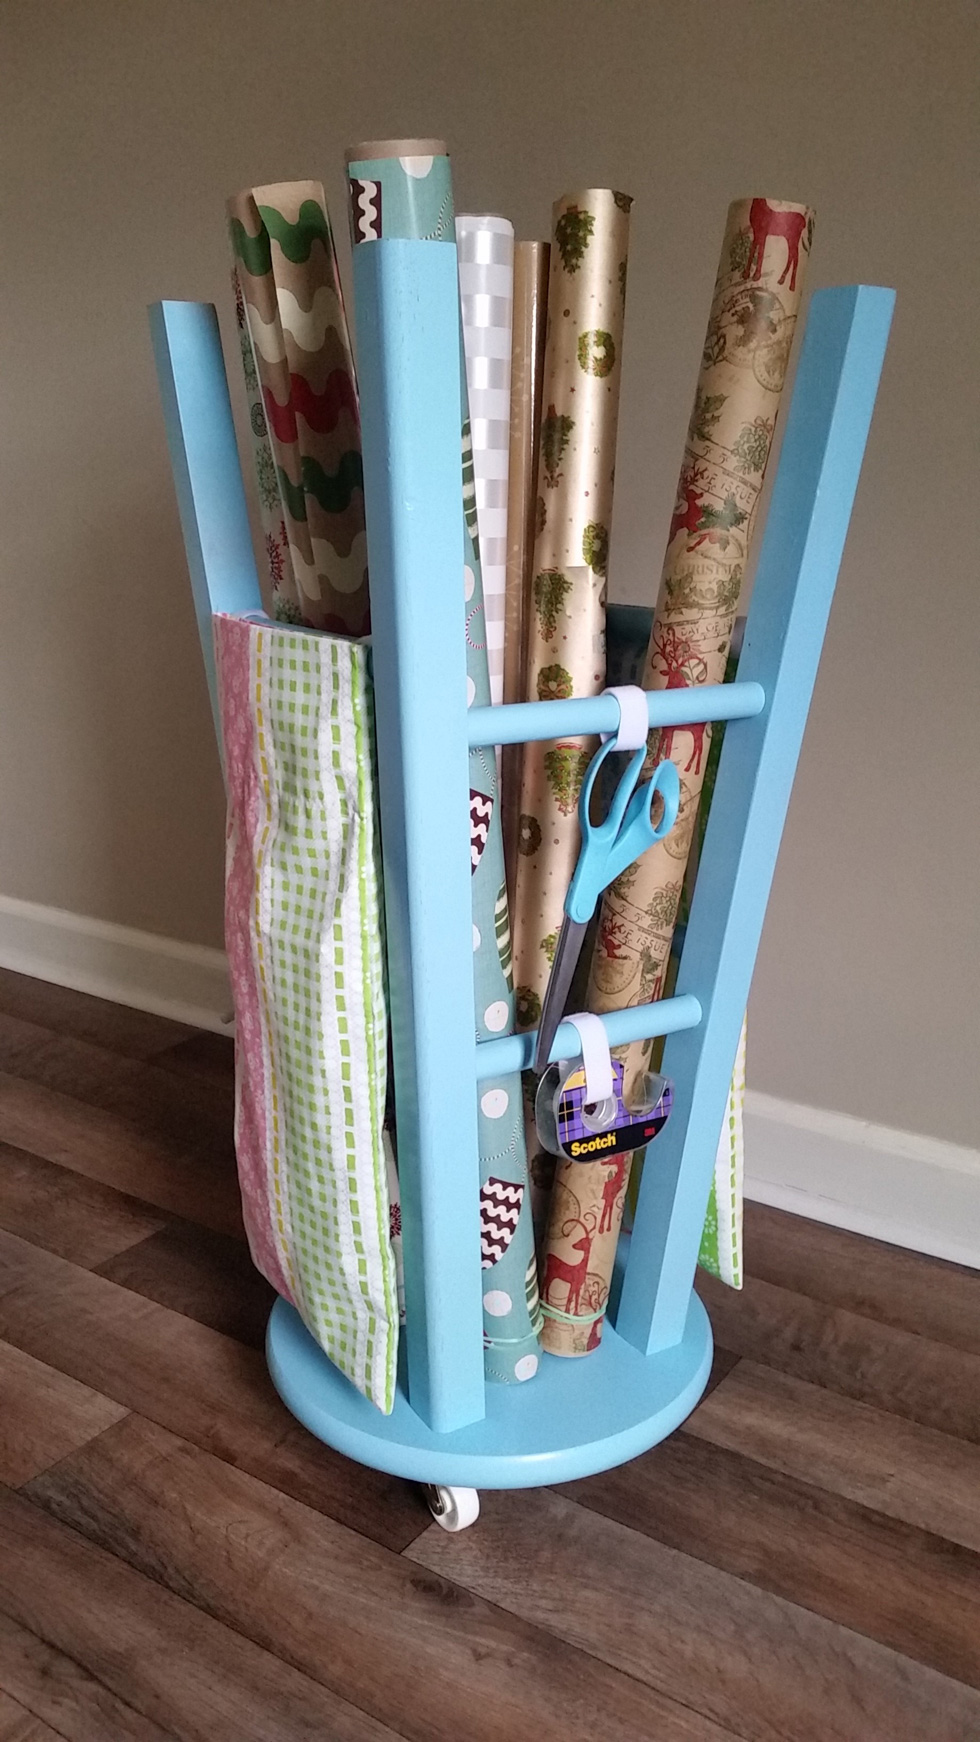 Gift wrap organizer created from a wooden stool